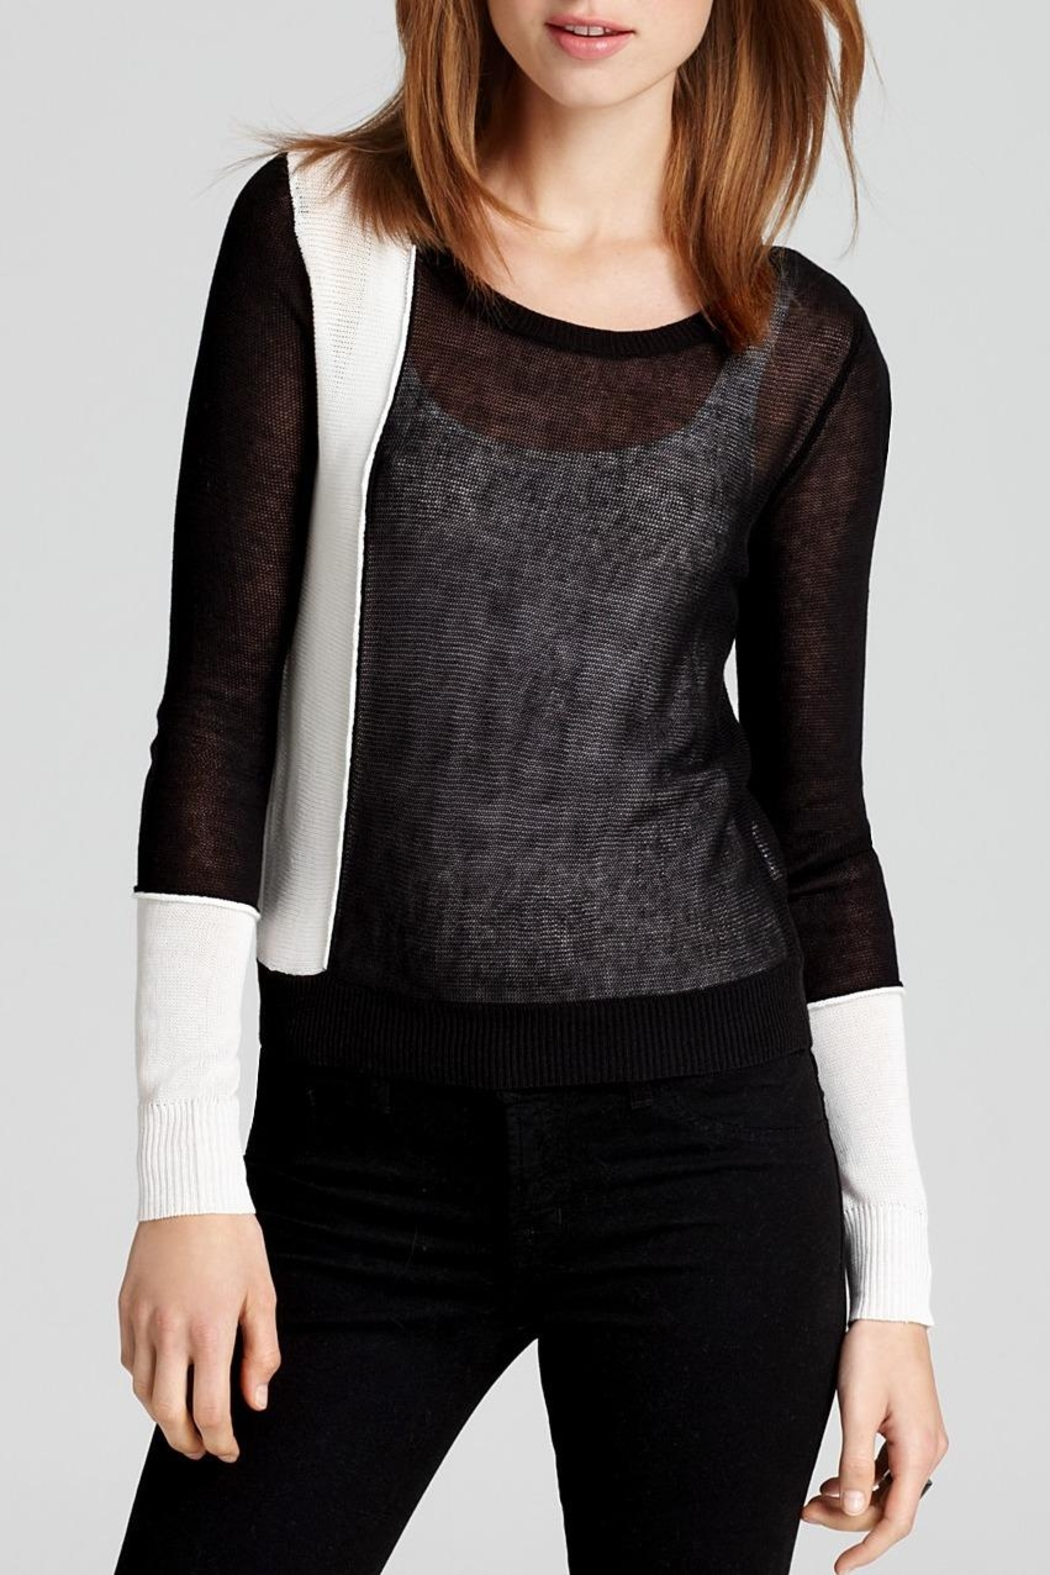 BCBG Max Azria Julian Sweater - Main Image